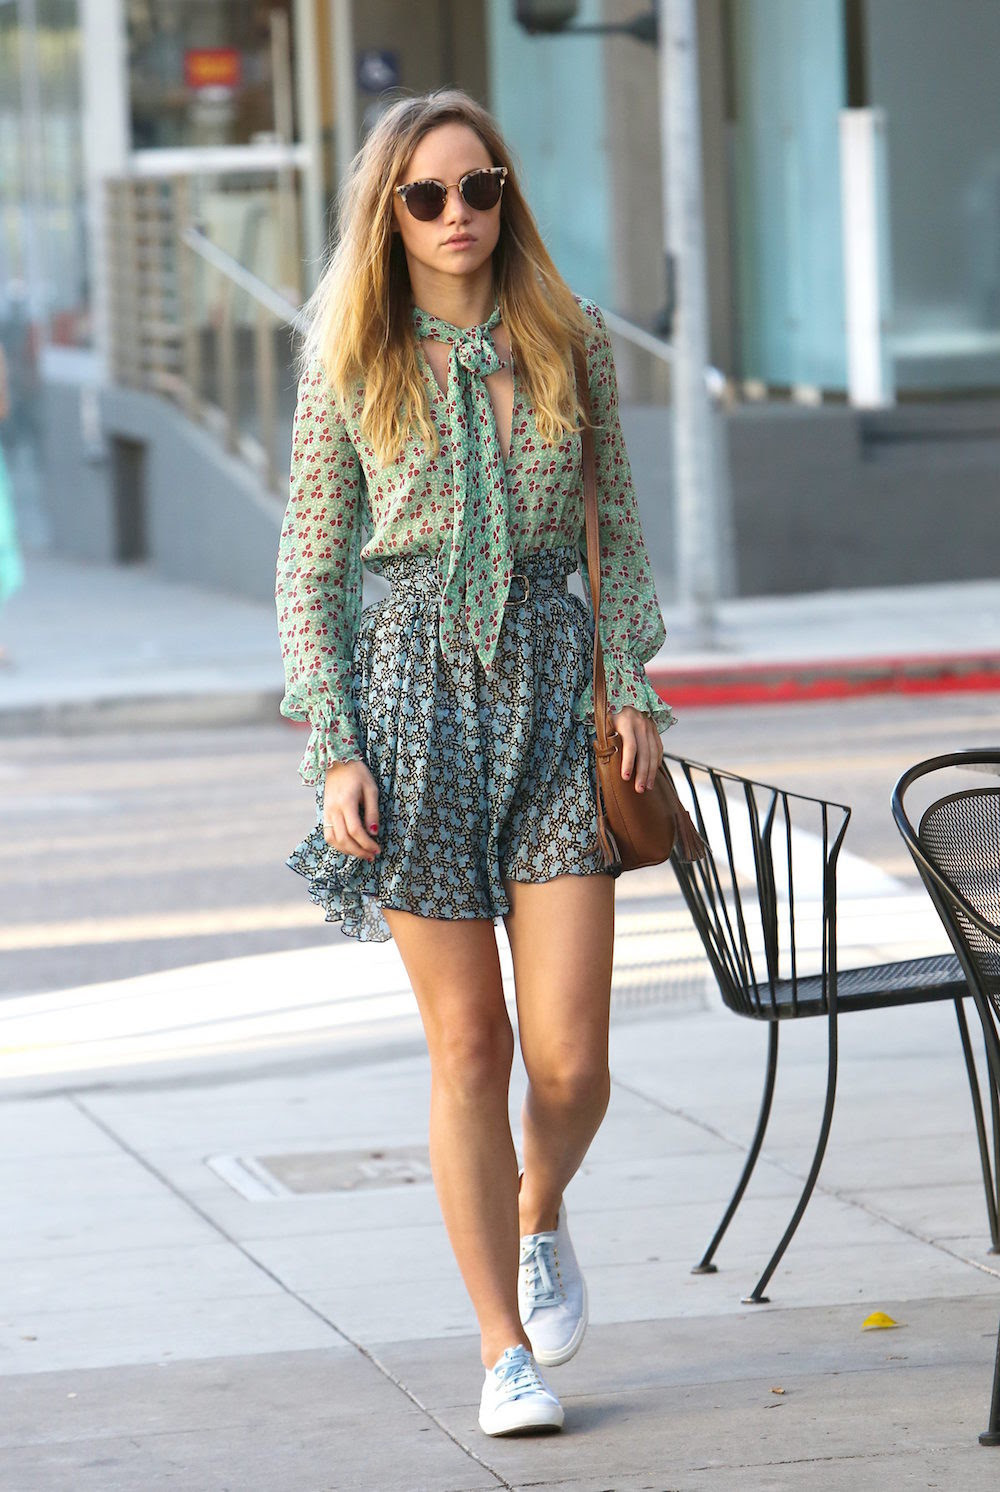 Suki Waterhouse Con Look Primaveral